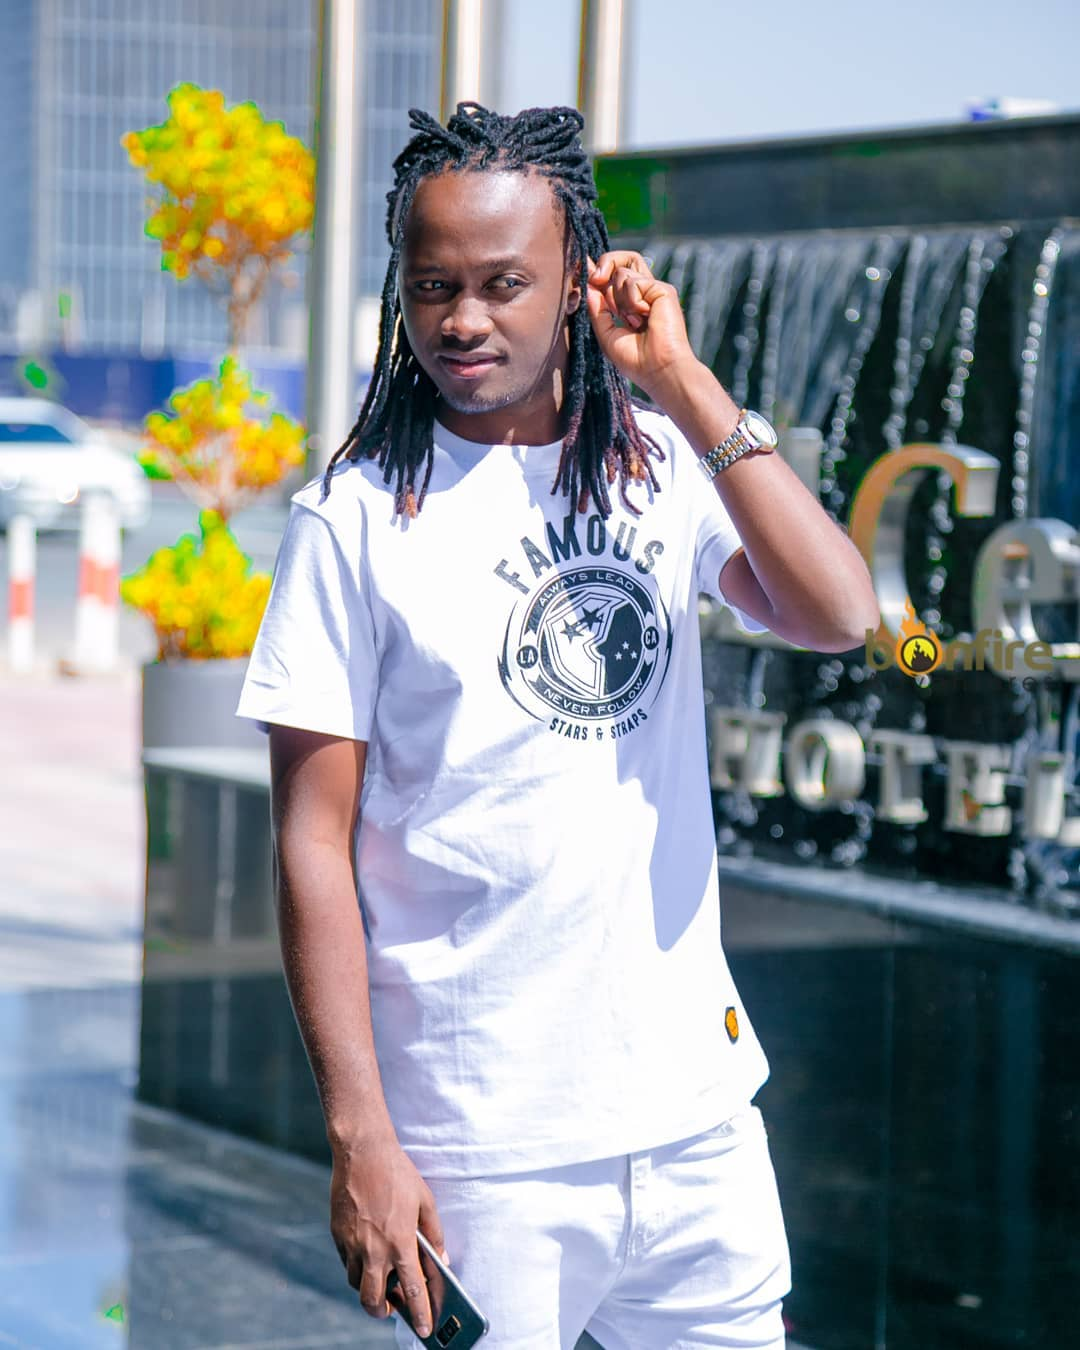 Bahati in white - Hatulali nawe! Bahati told after asking fans about his dreads